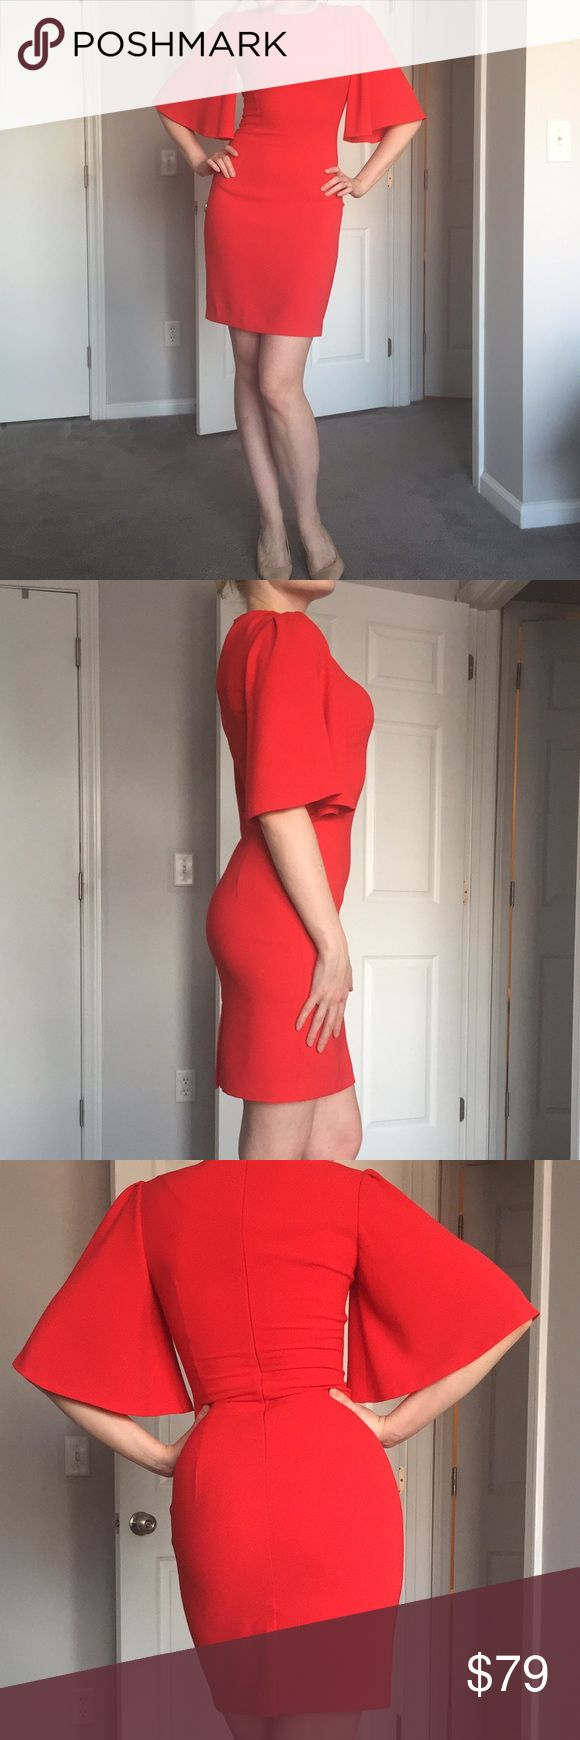 Red bodycon dress Worn once. In great condition. Figure flattering. Color between red and orange red. Us size is not 6 but 4 Dresses Mini